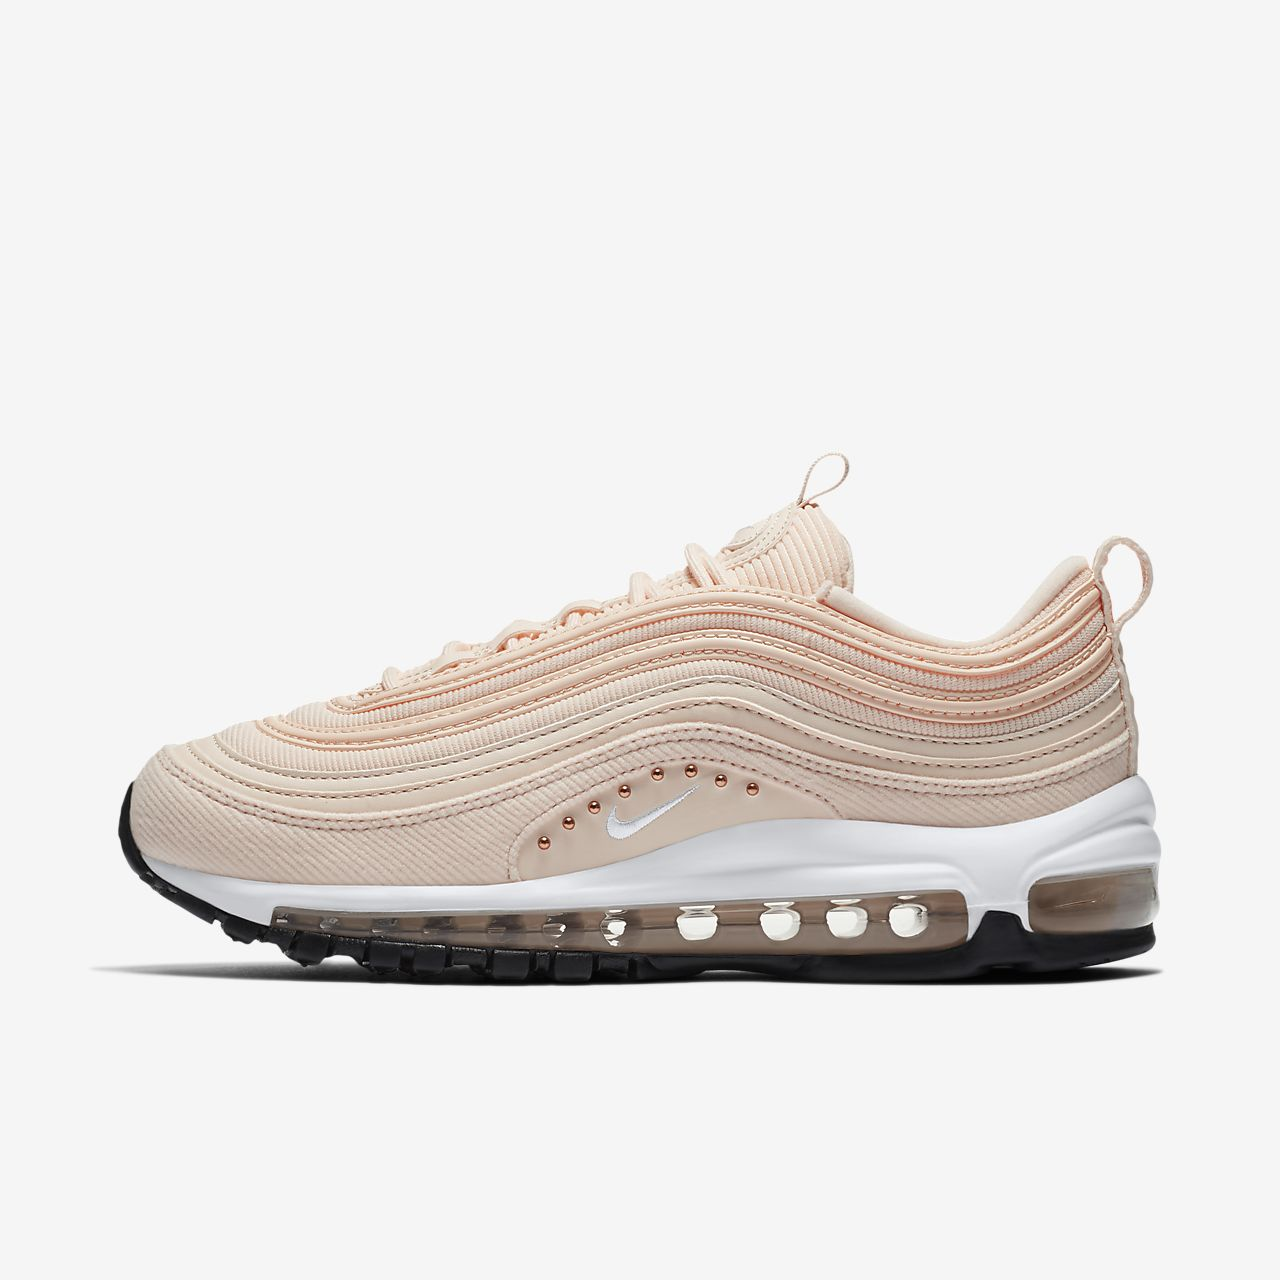 Nike Air Max 97 SE Metallic Women's Shoe